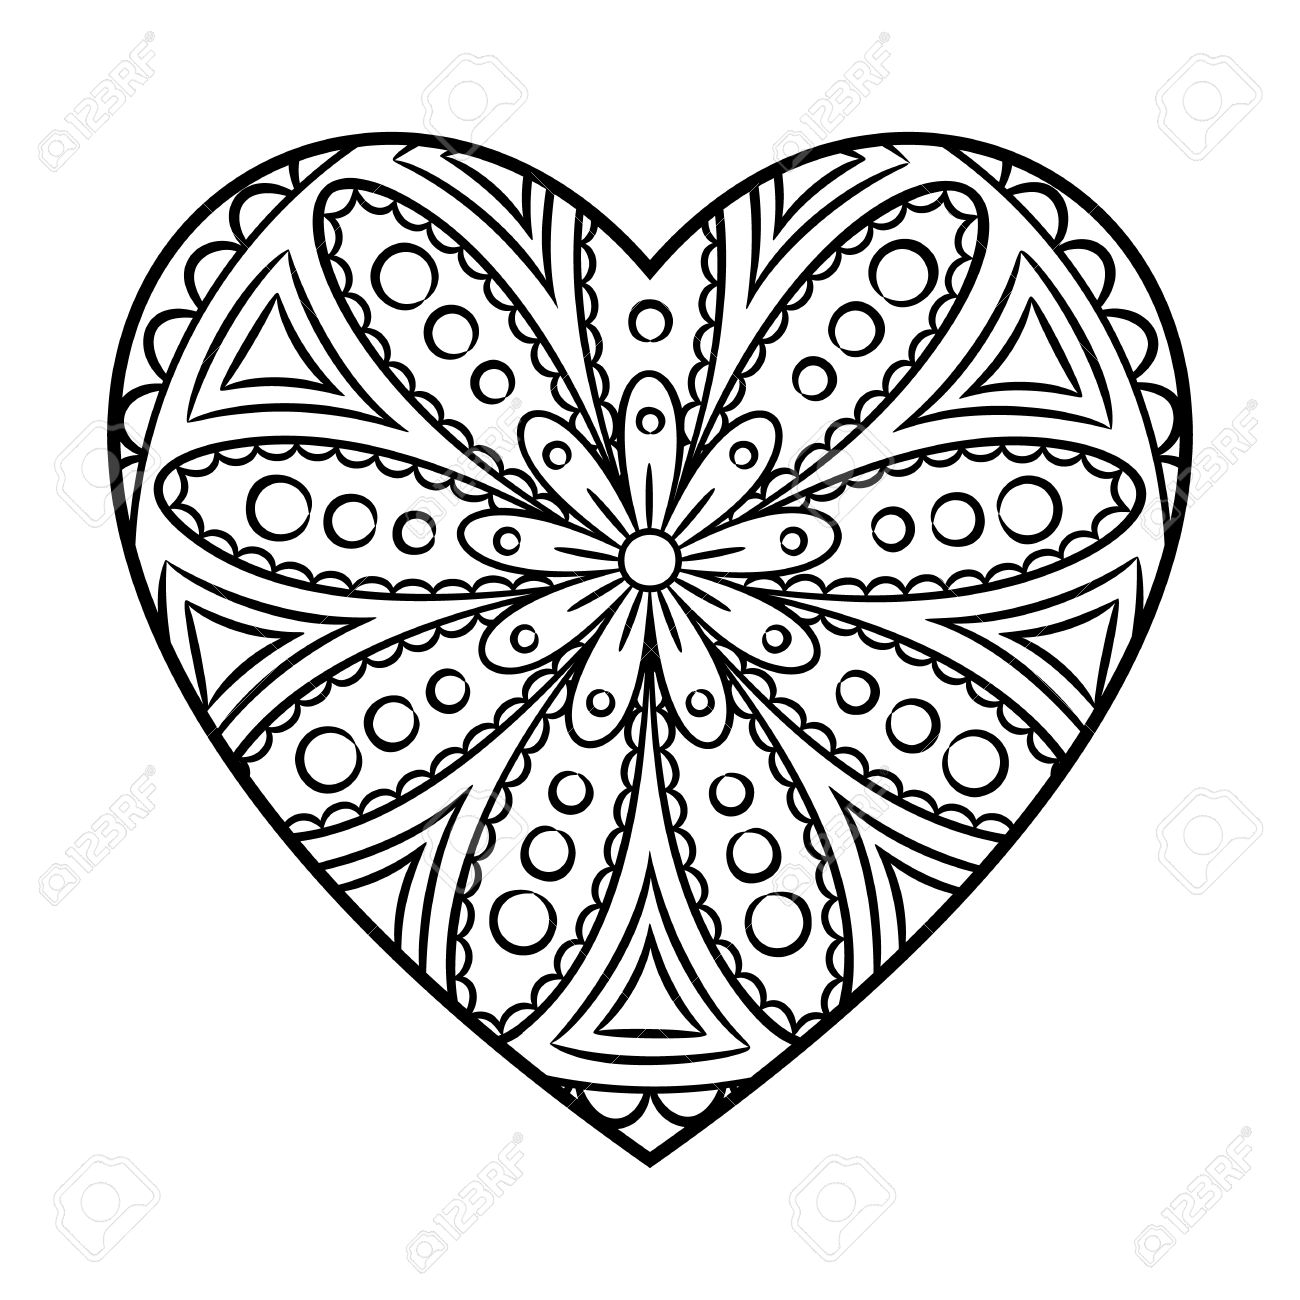 Christmas Heart Coloring Page With Free Shape Pages Awesome For